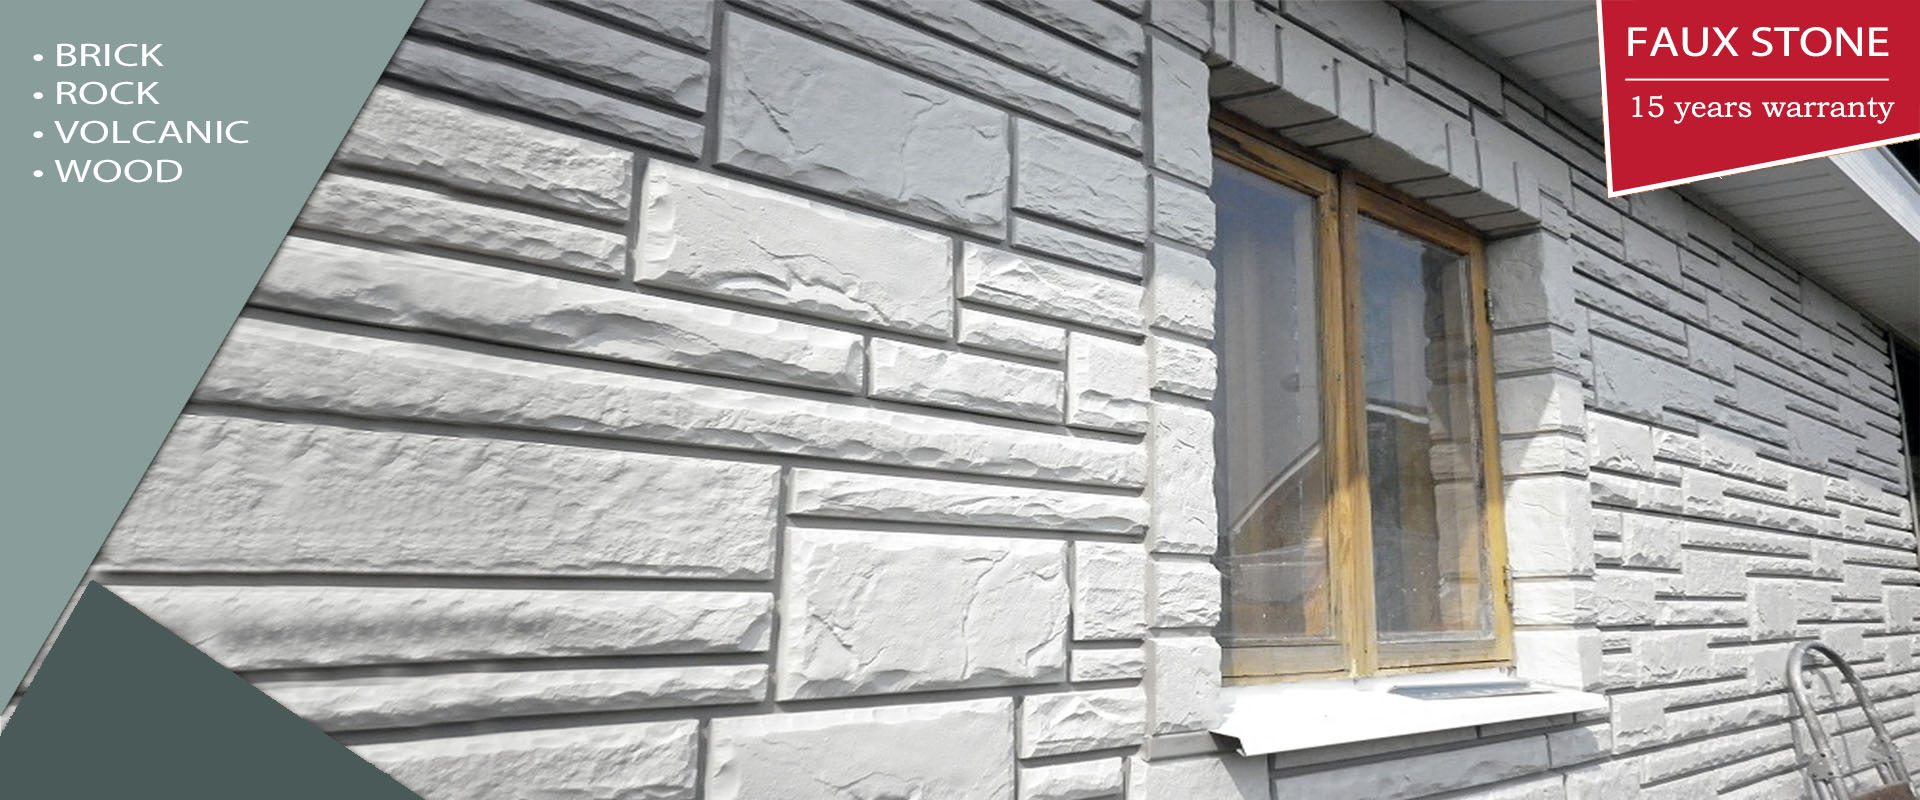 Chinese Plastic Faux Stone Siding